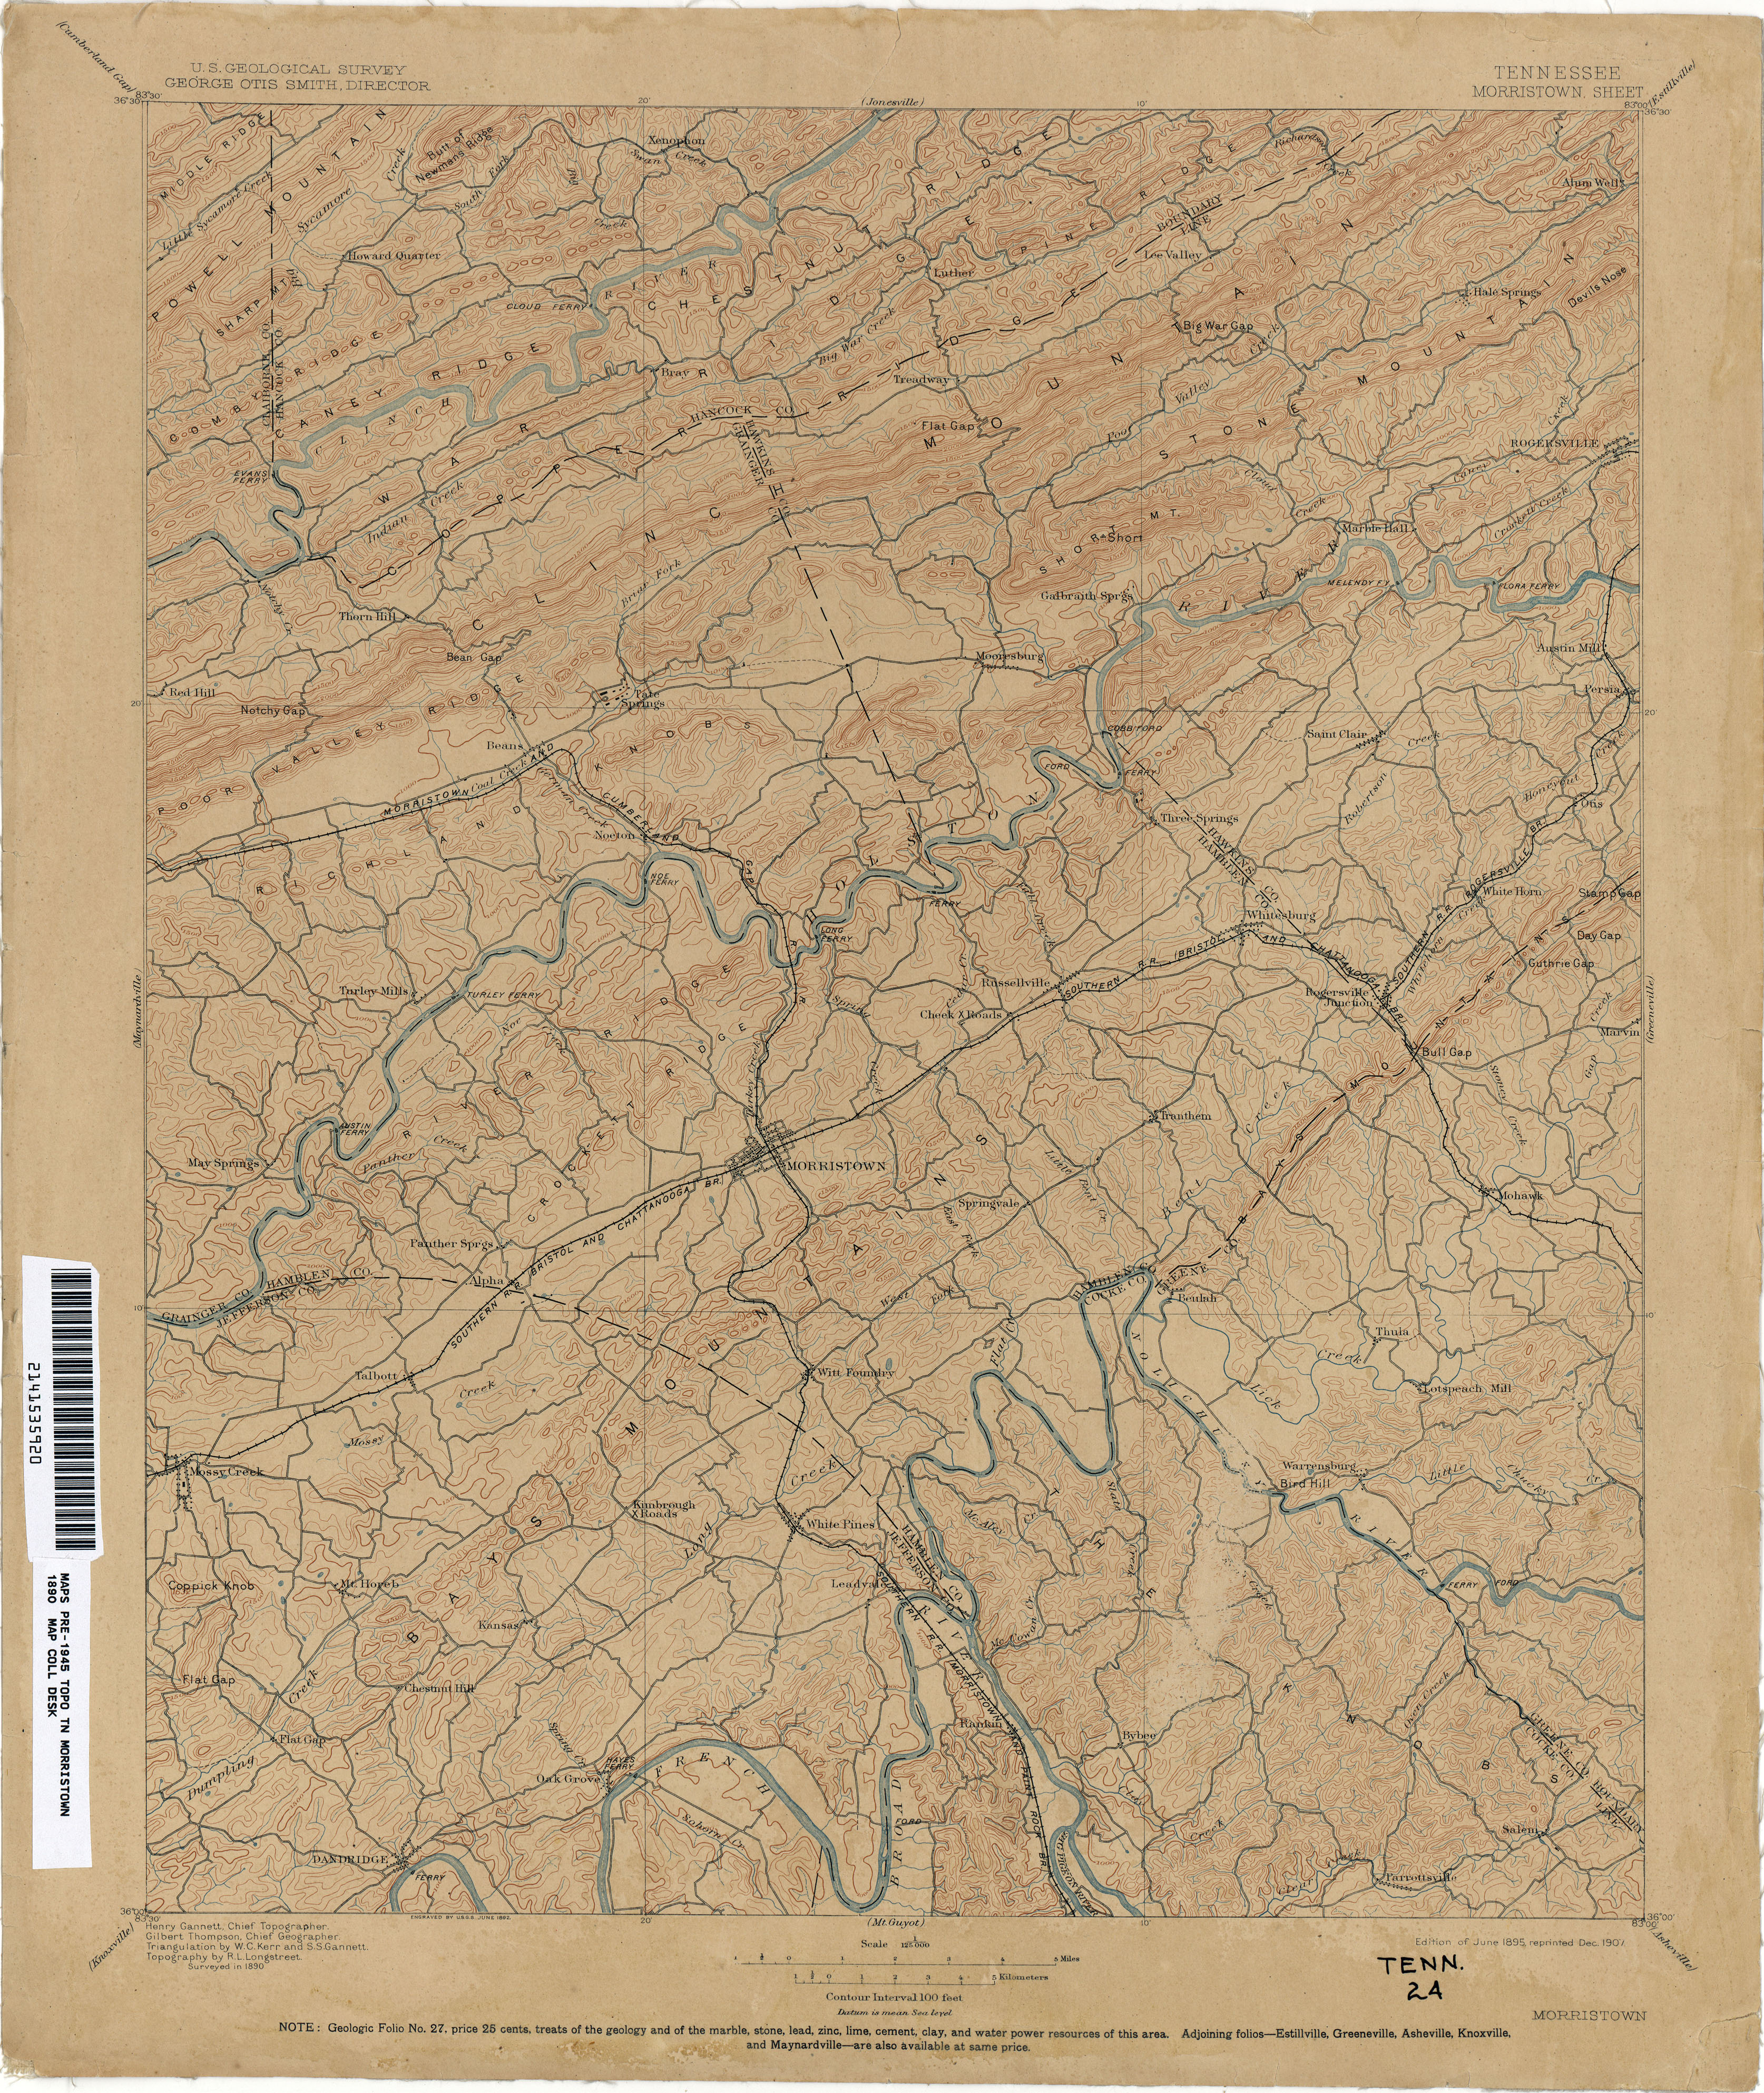 Tennesse Historical Topographic Maps - Perry-Castañeda Map ... on